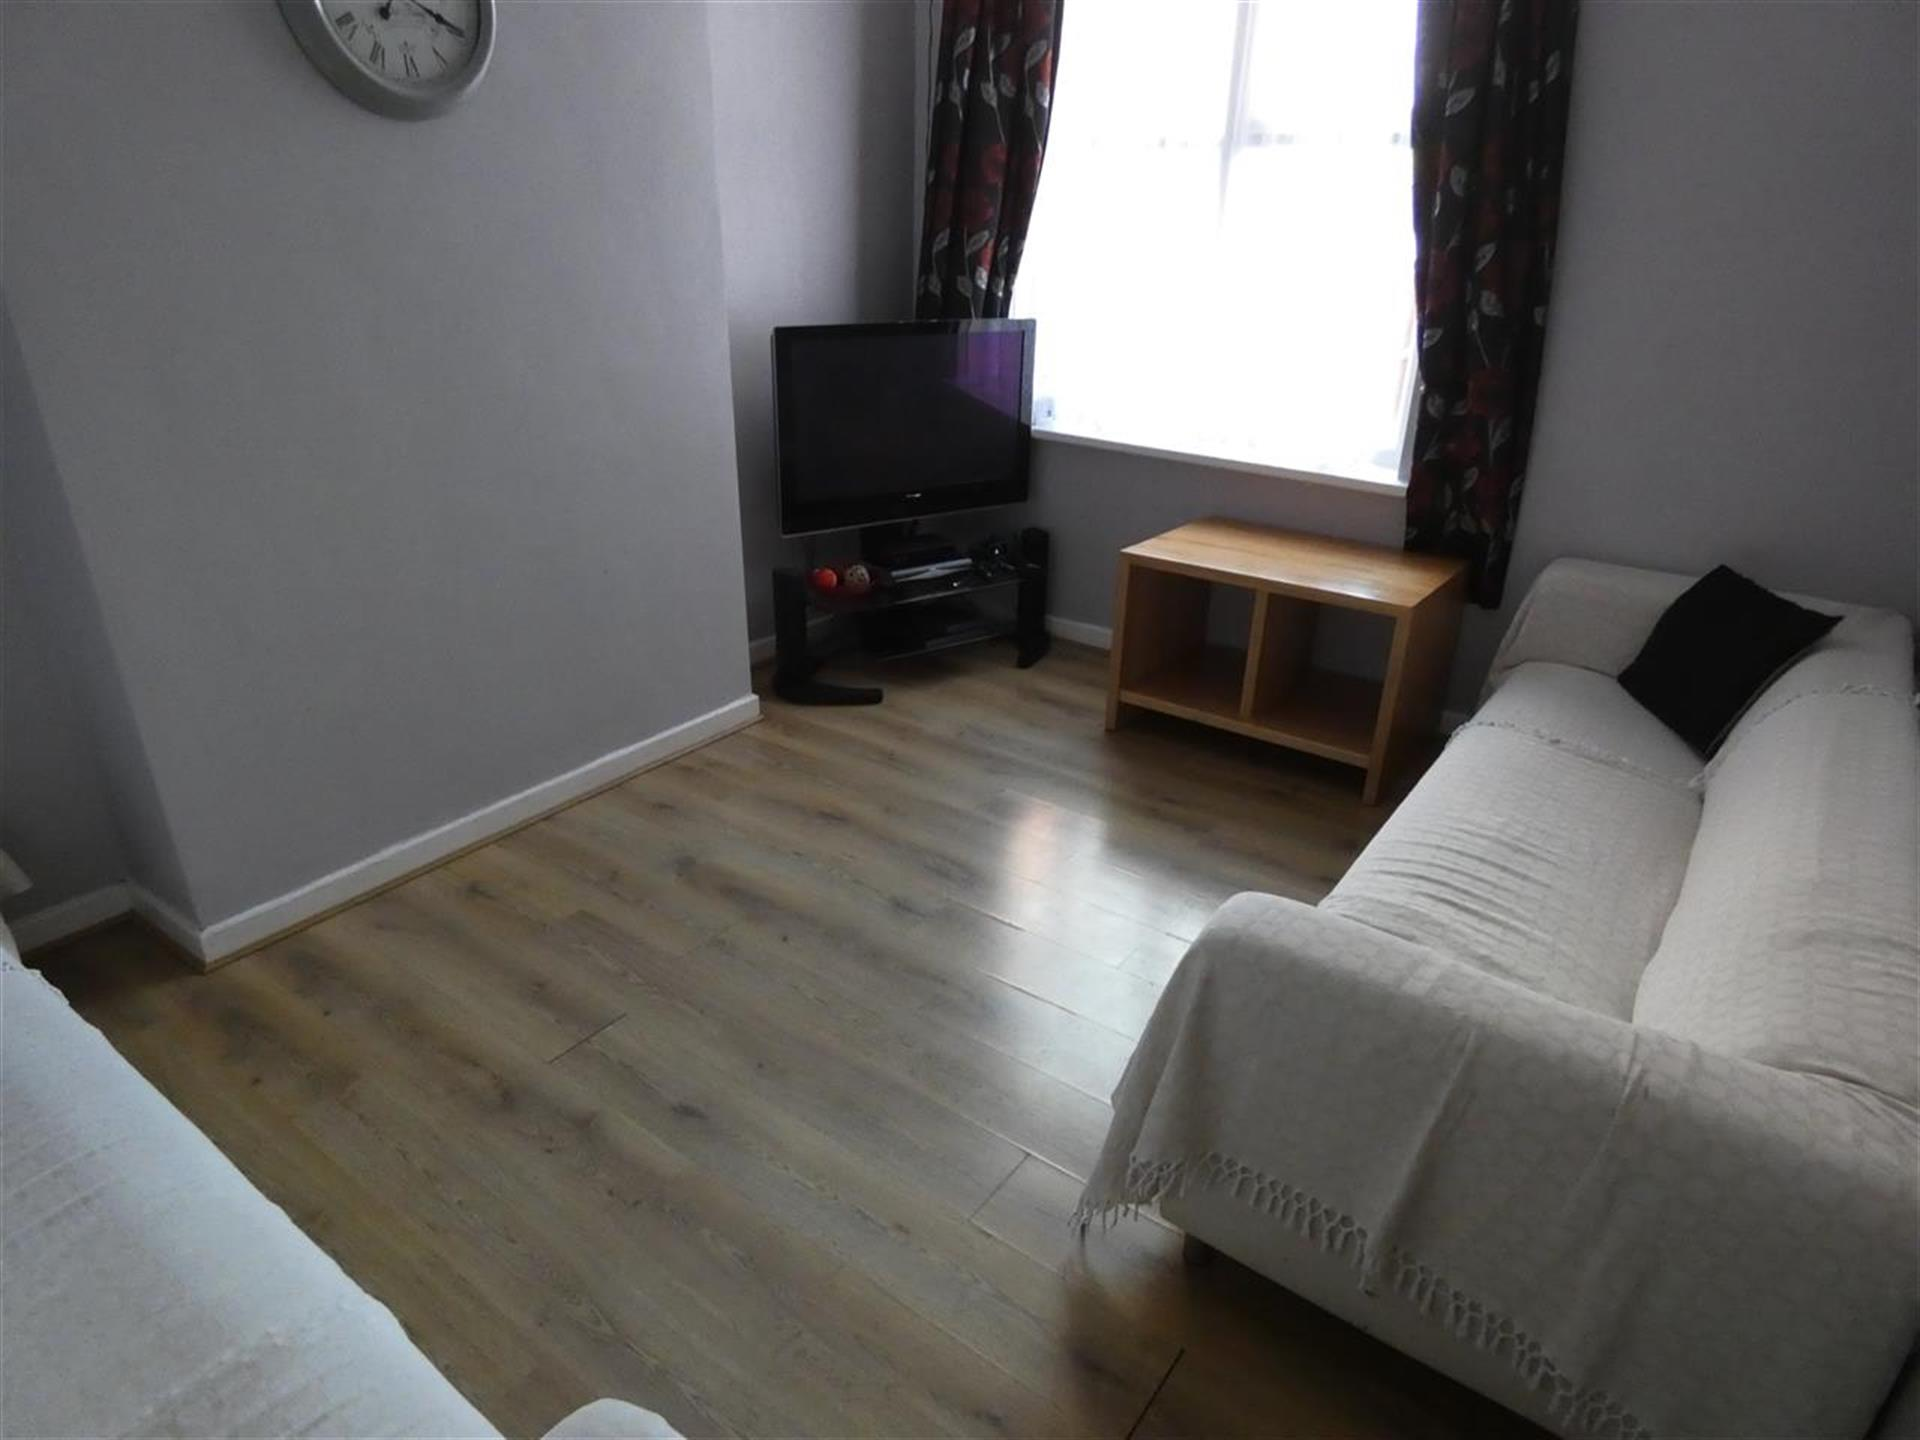 4 Bedroom Terraced House For Sale - Reception Room Two